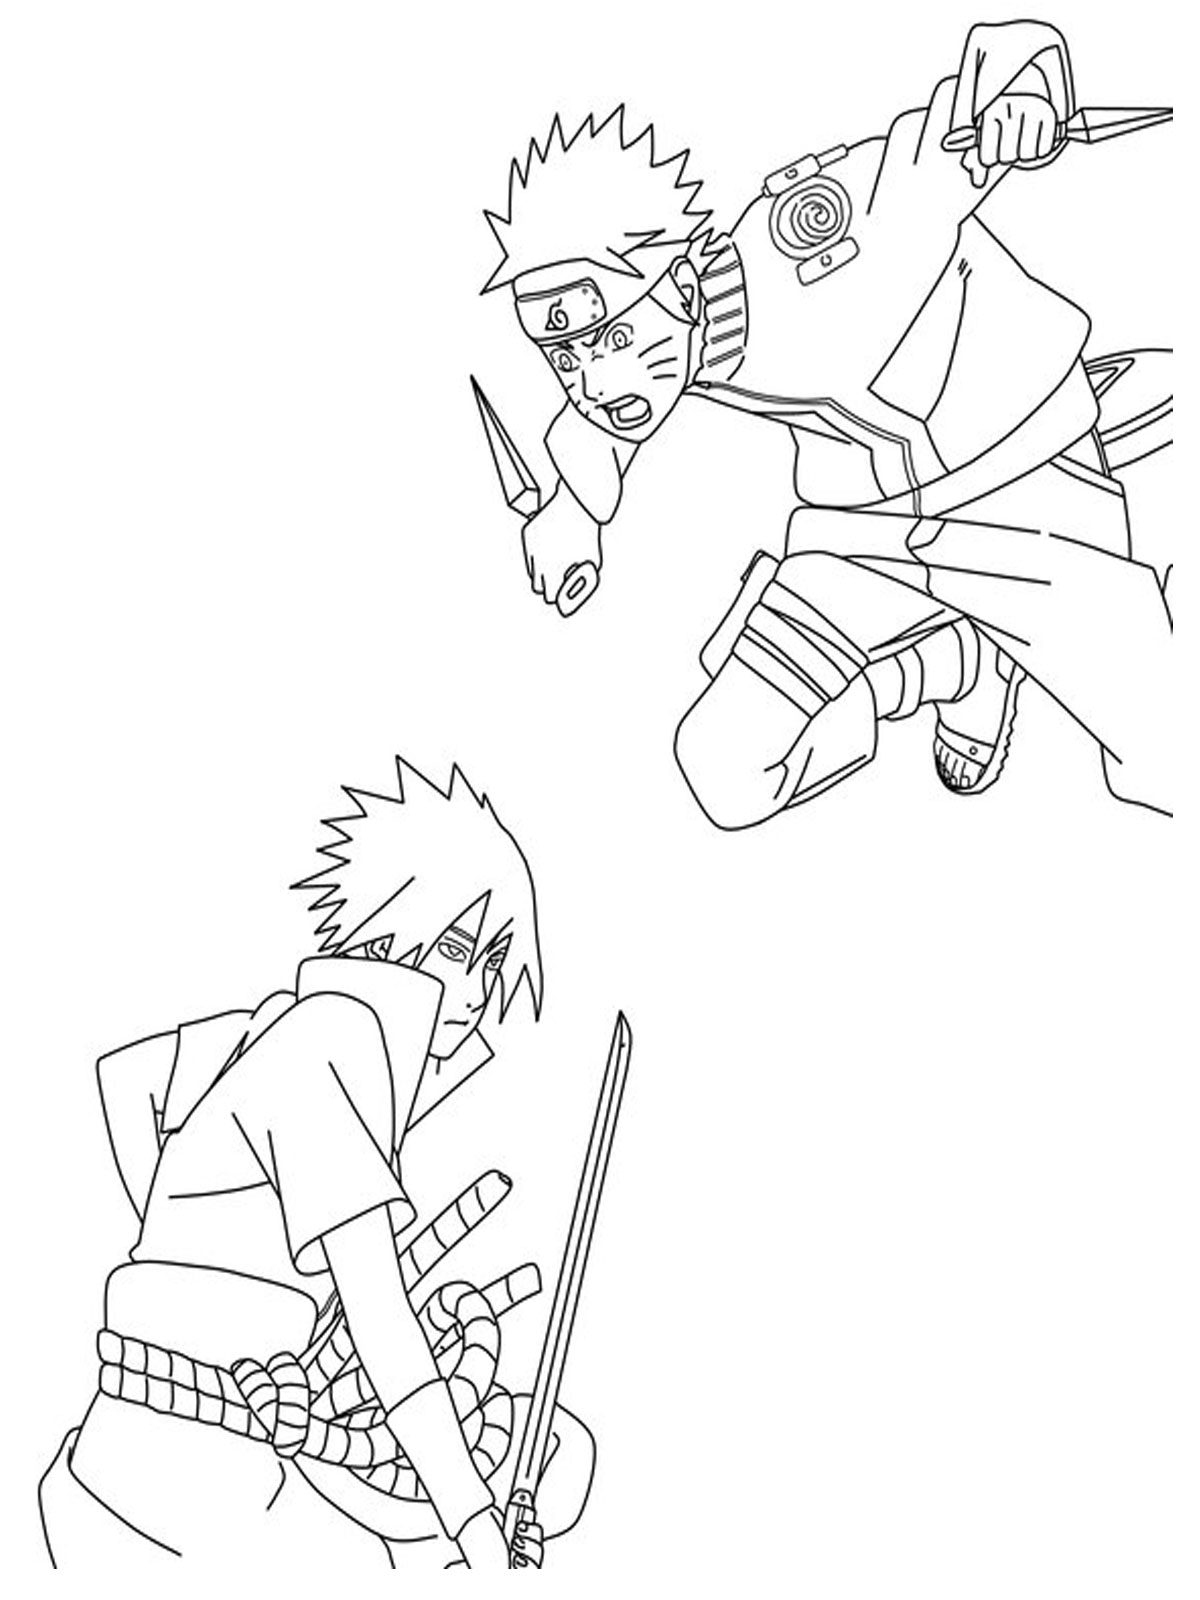 It's just a photo of Punchy naruto and sasuke coloring pages